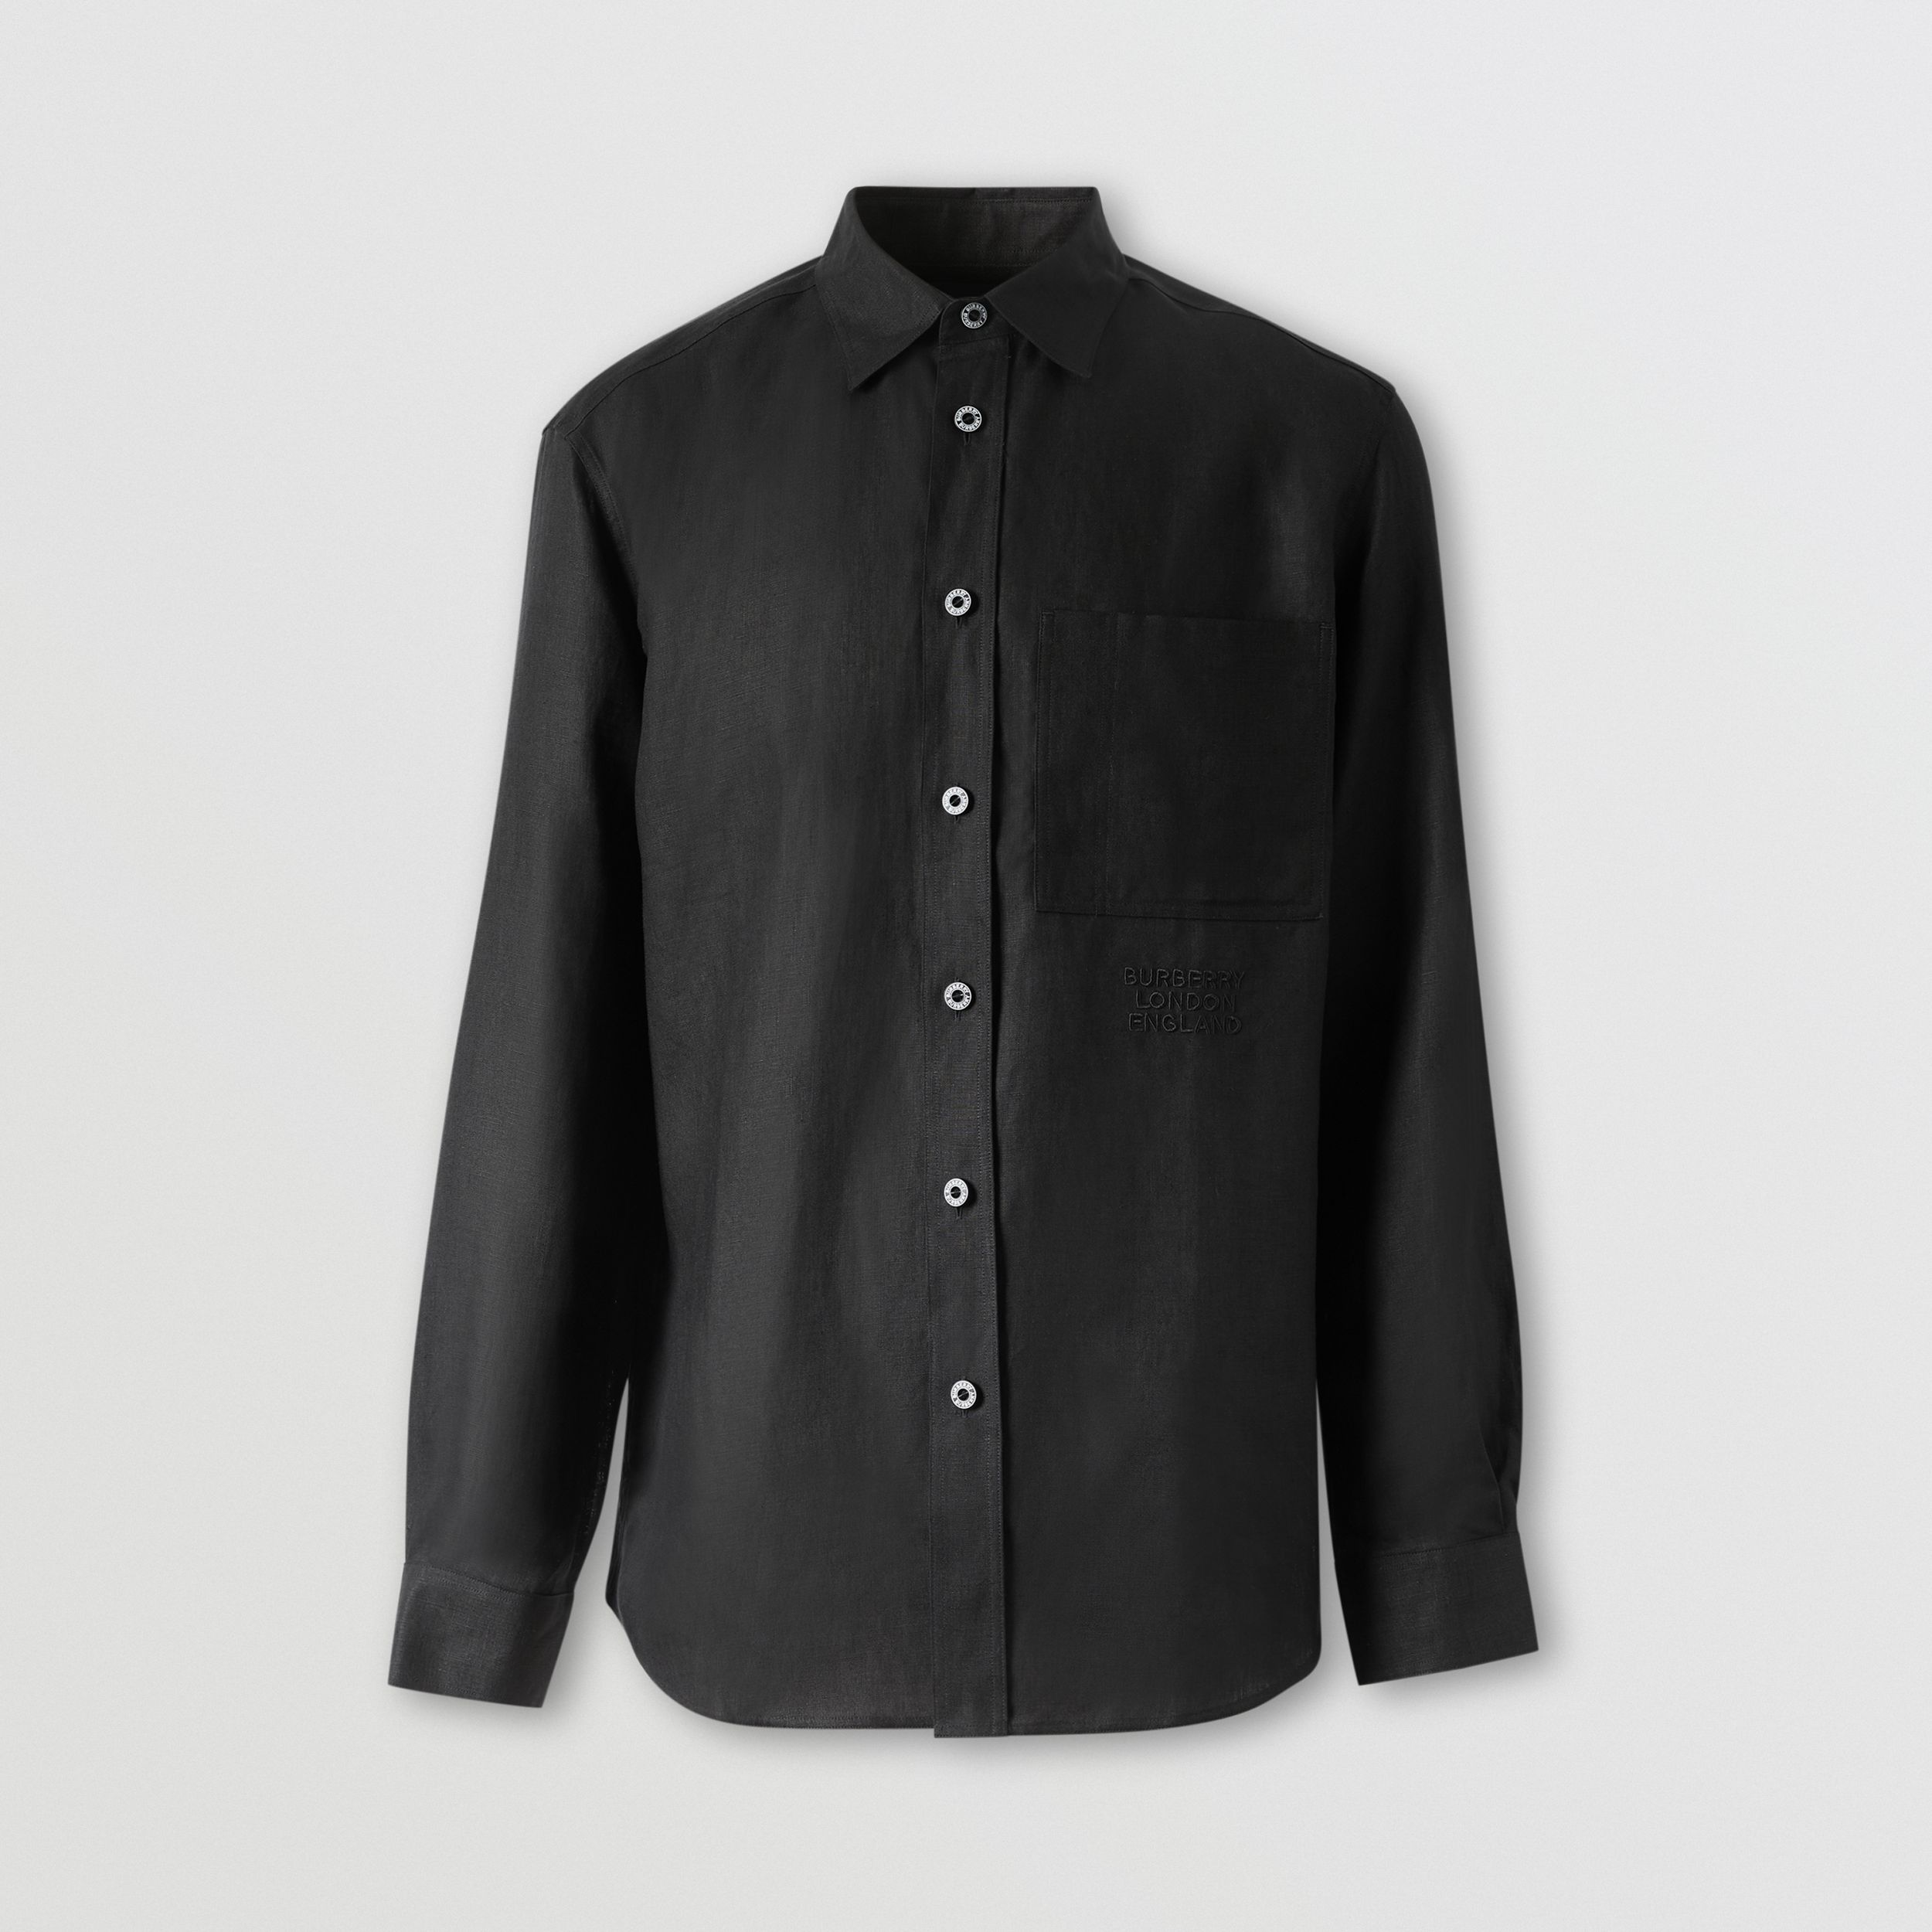 Embroidered Logo Linen Shirt in Black - Men | Burberry Hong Kong S.A.R. - 4